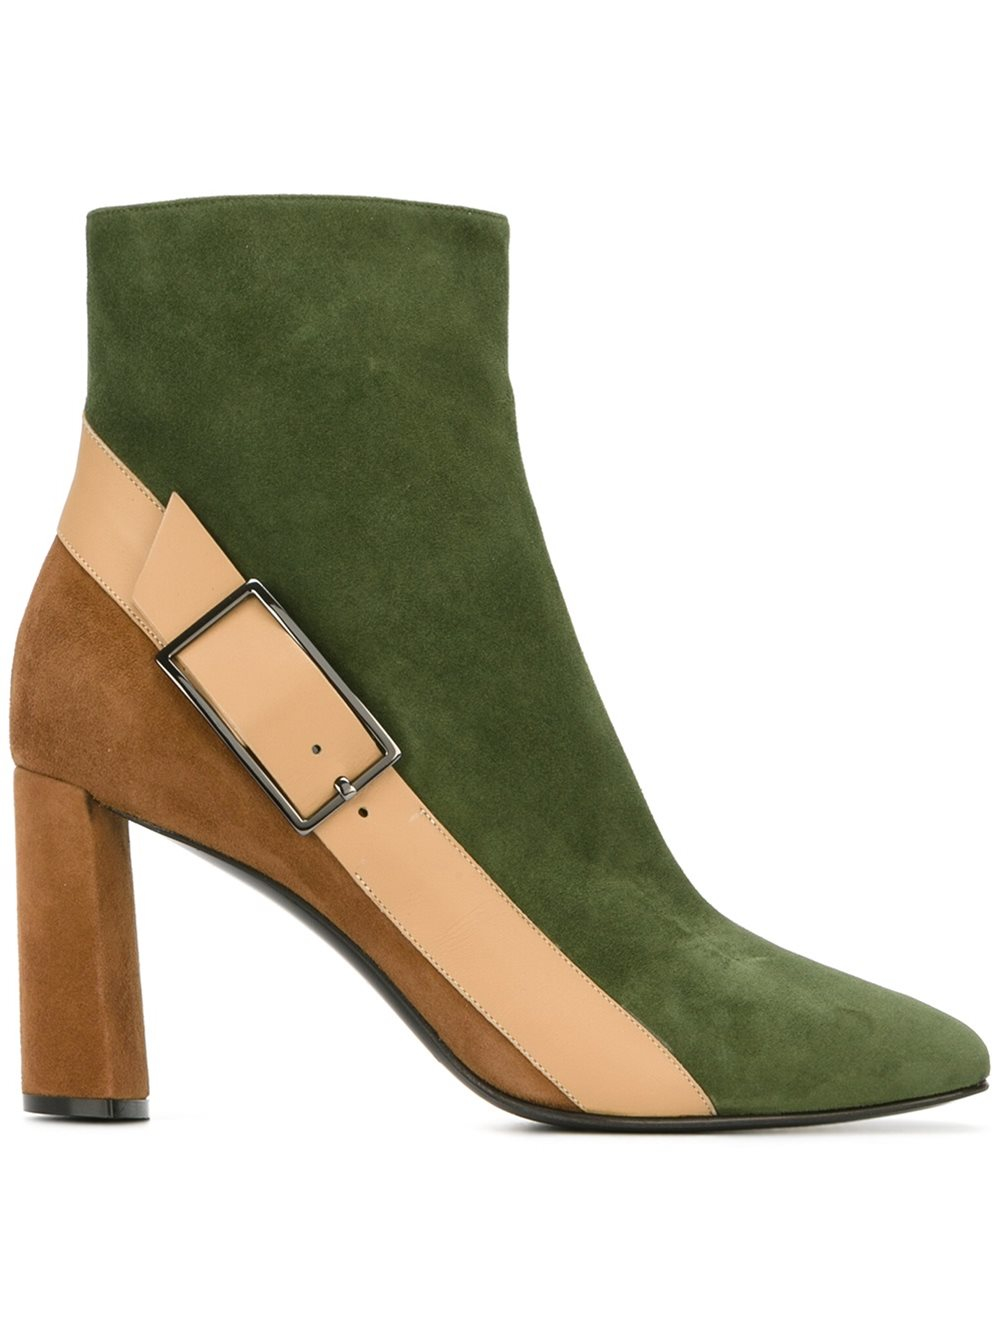 casadei buckle detail boots in green lyst. Black Bedroom Furniture Sets. Home Design Ideas